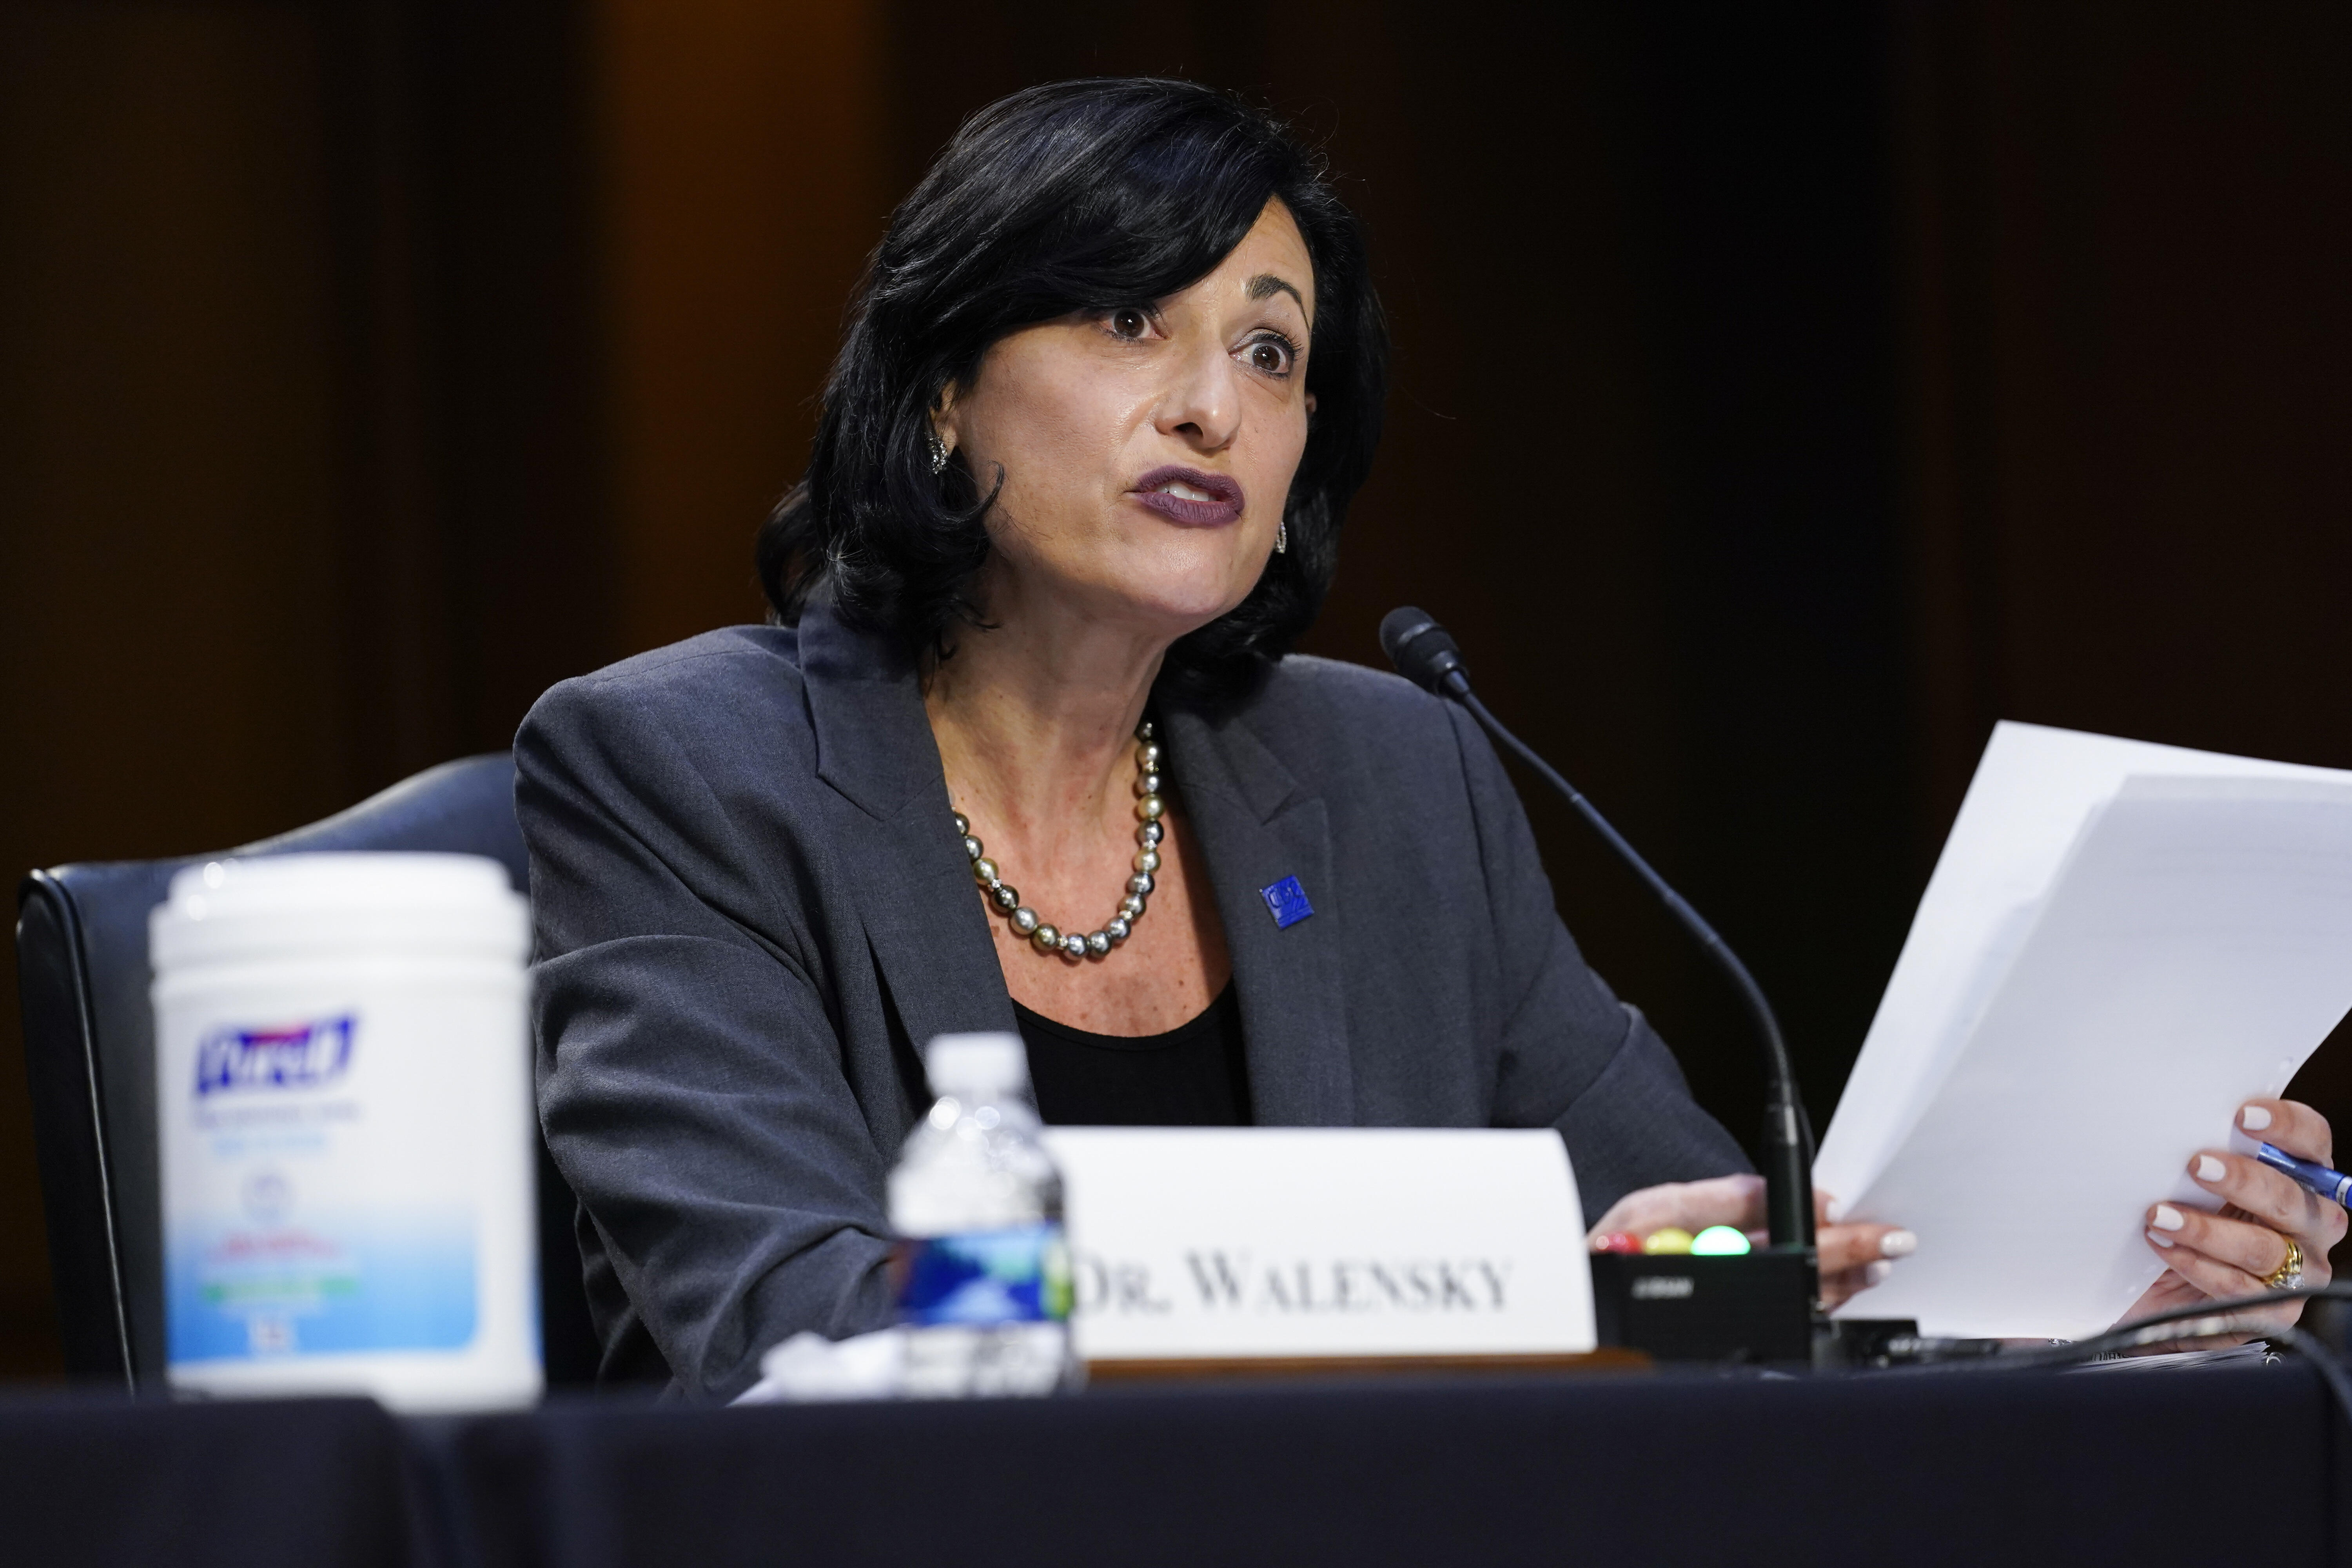 Dr. Rochelle Walensky, director of the Centers for Disease Control and Prevention, testifies during a Senate hearing.